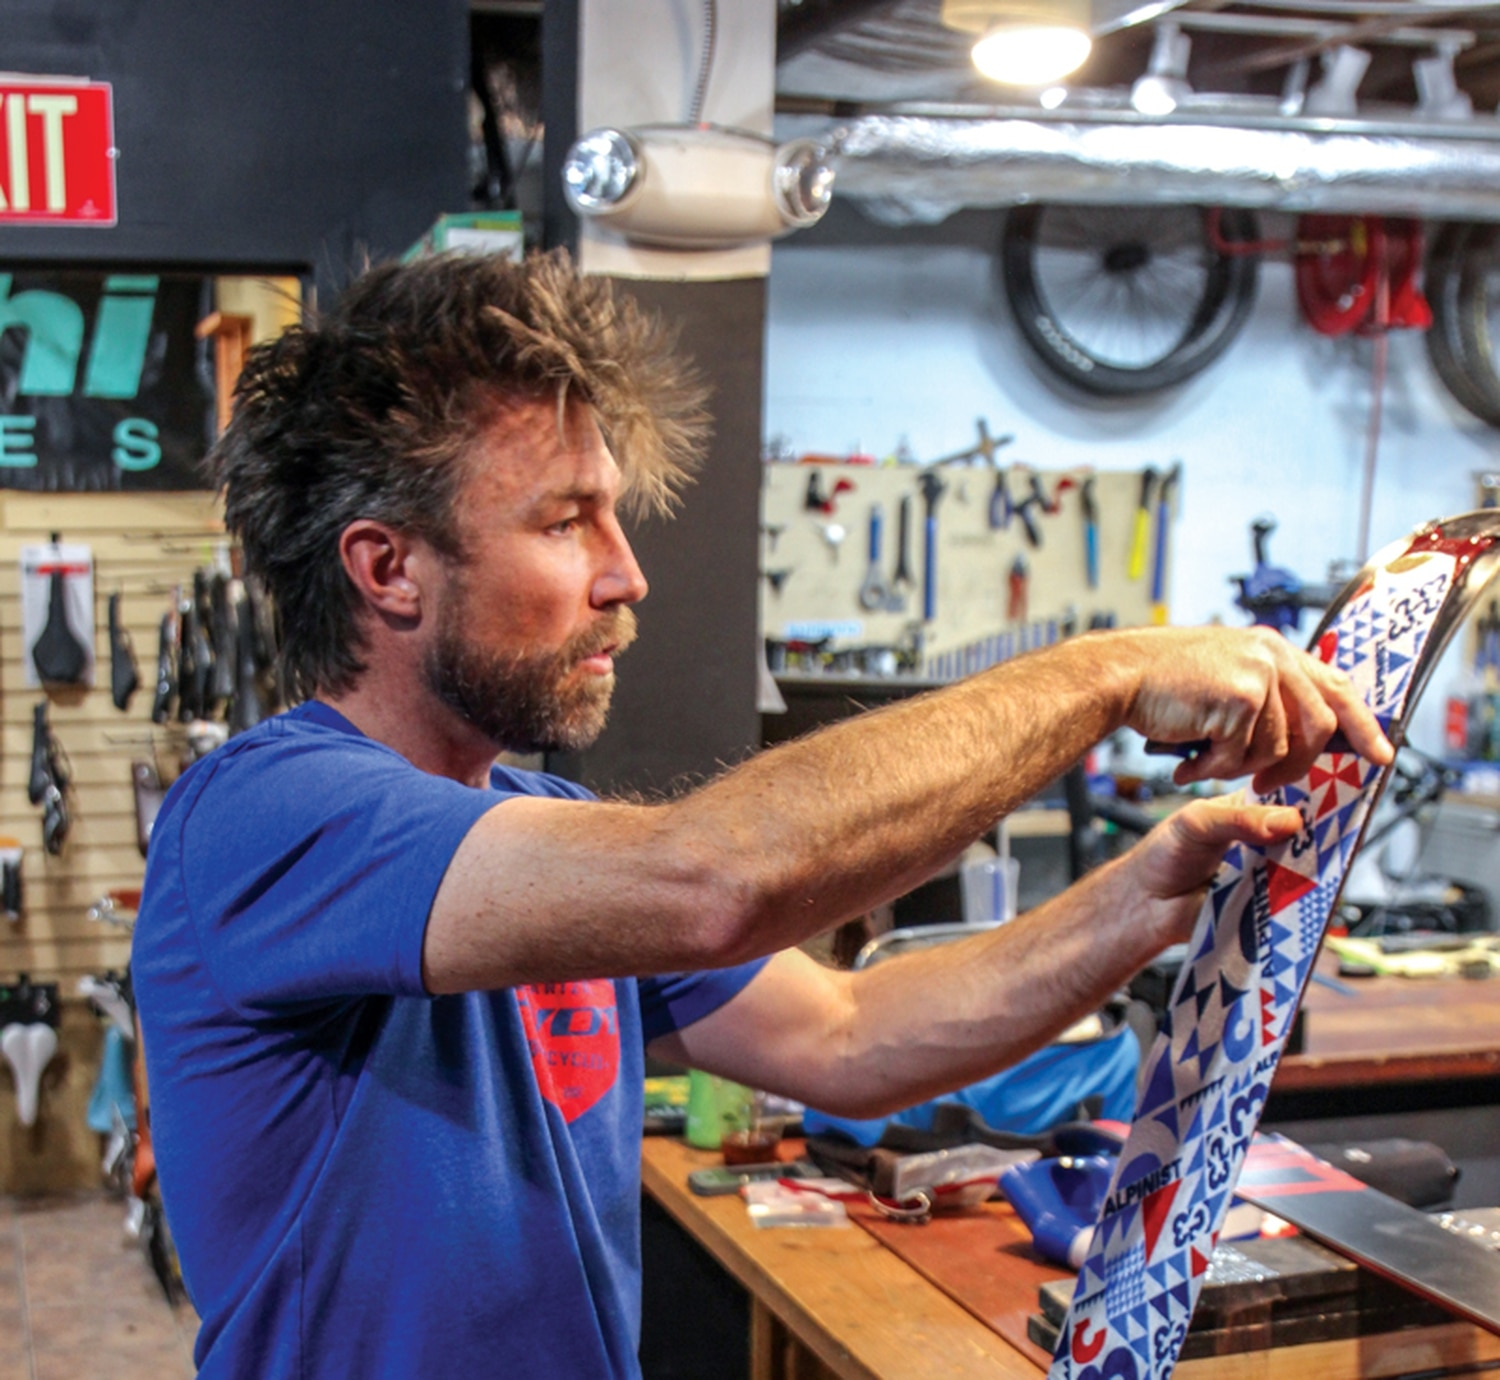 Owen Haggard says the key to trimming skins is a smooth, confident cut that leaves enough of the ski bottom exposed to grab an edge.